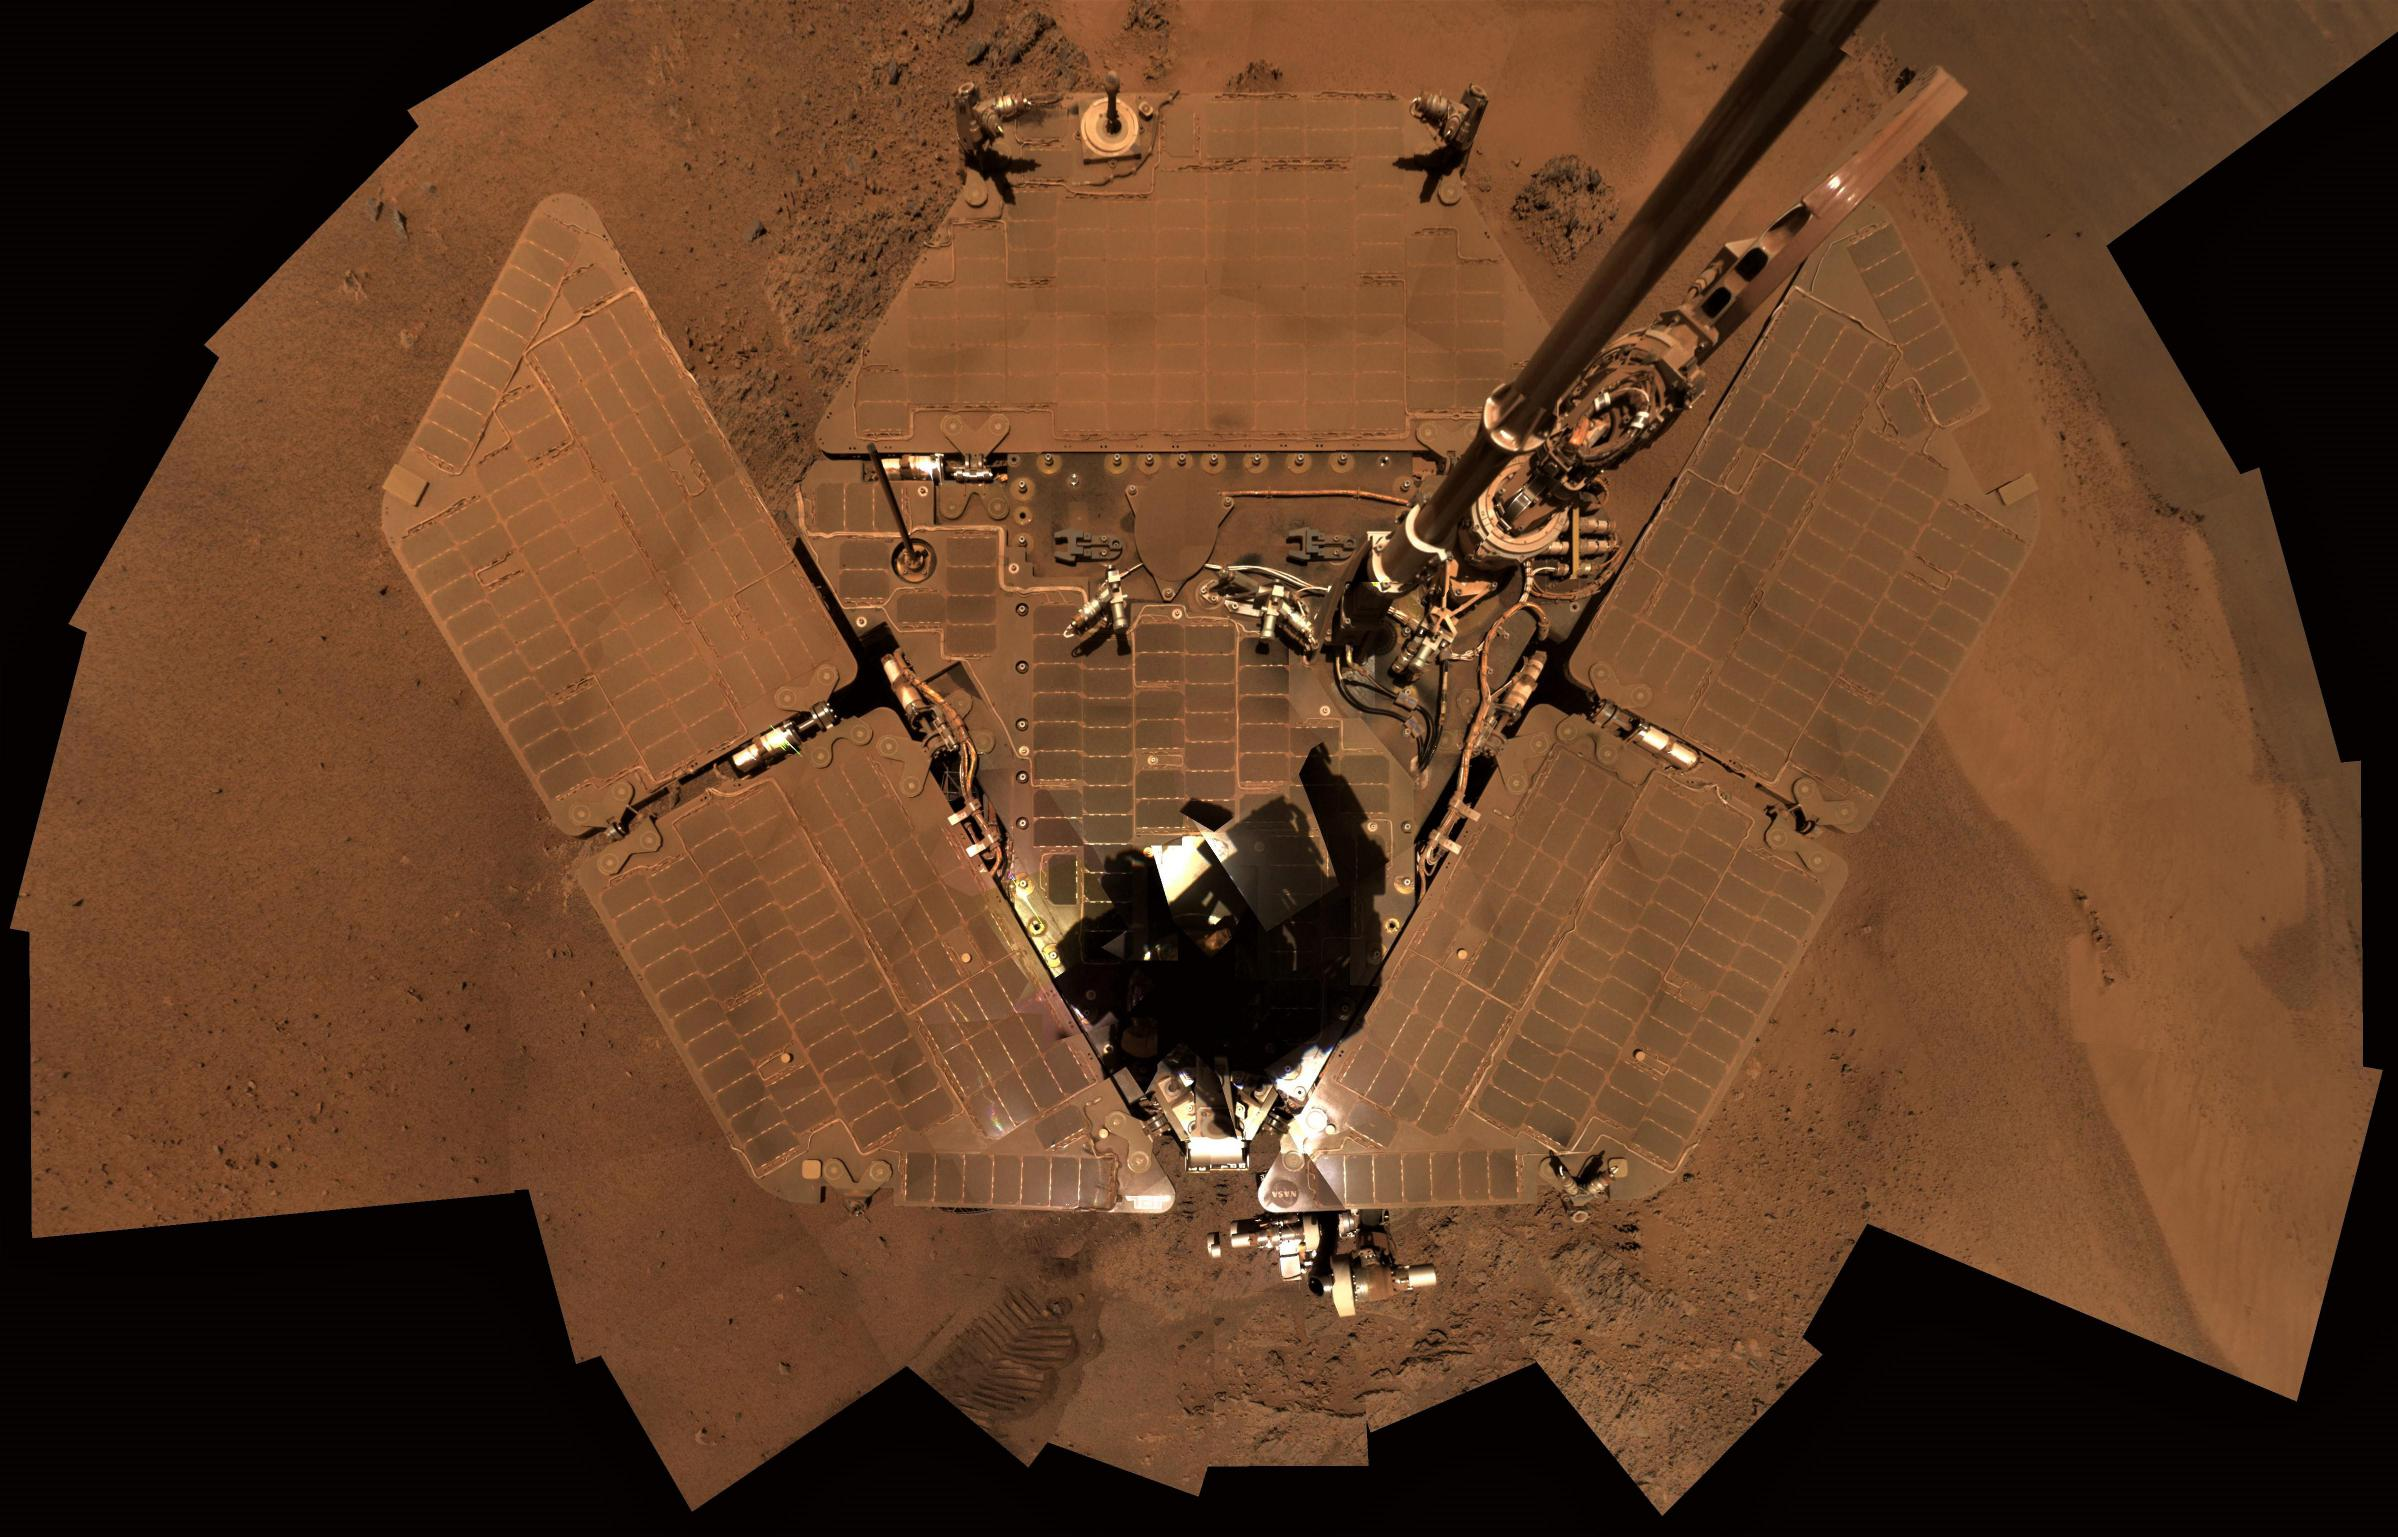 Opportunity dusty solar arrays Dec 2011 (NASA, JPL)(c)